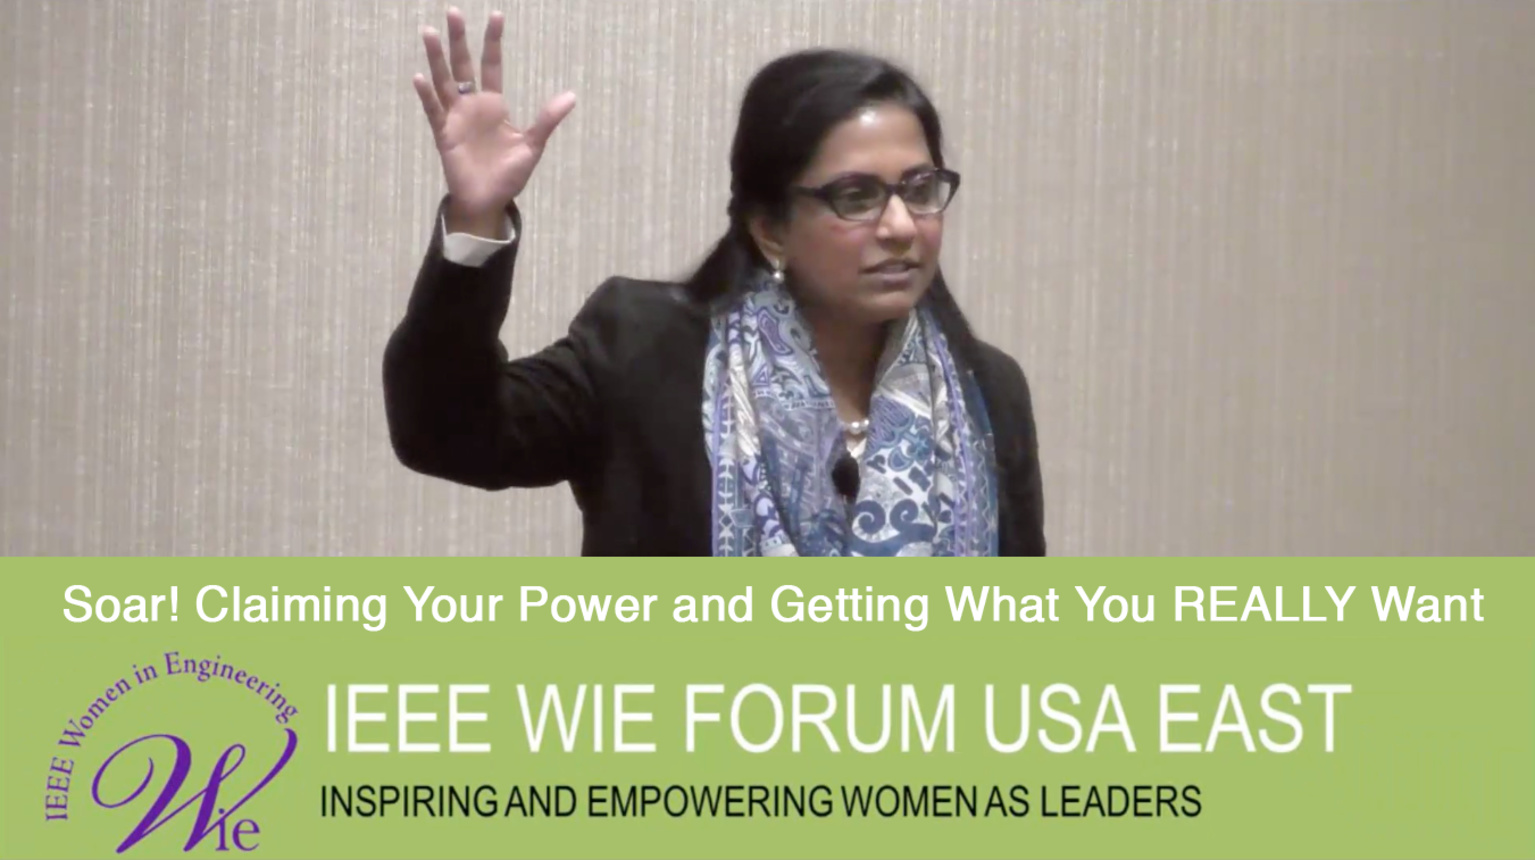 Soar! Claiming Your Power and Getting What You REALLY Want - Seeta Hariharan keynote from IEEE WIE Forum USA East 2017